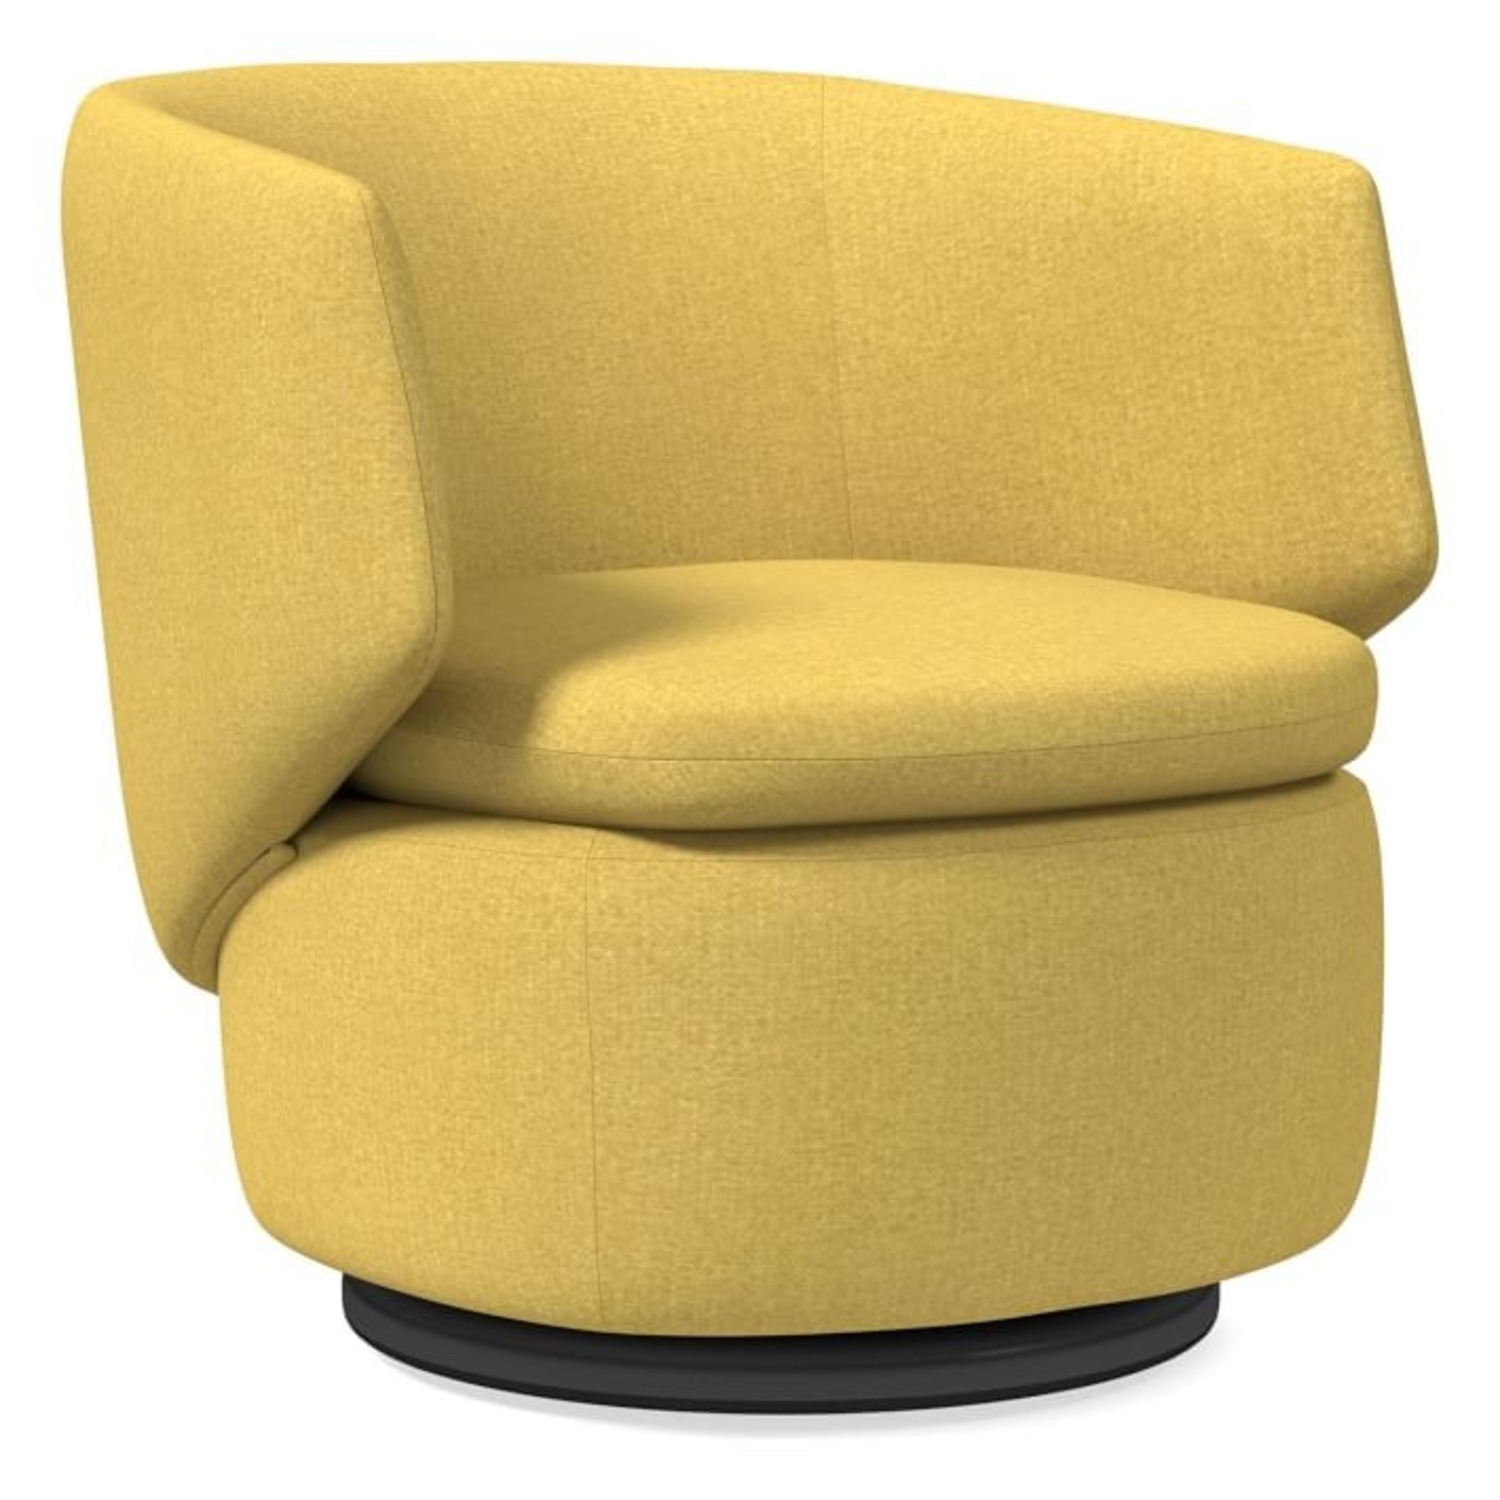 West Elm Crescent Swivel Chair - image-3